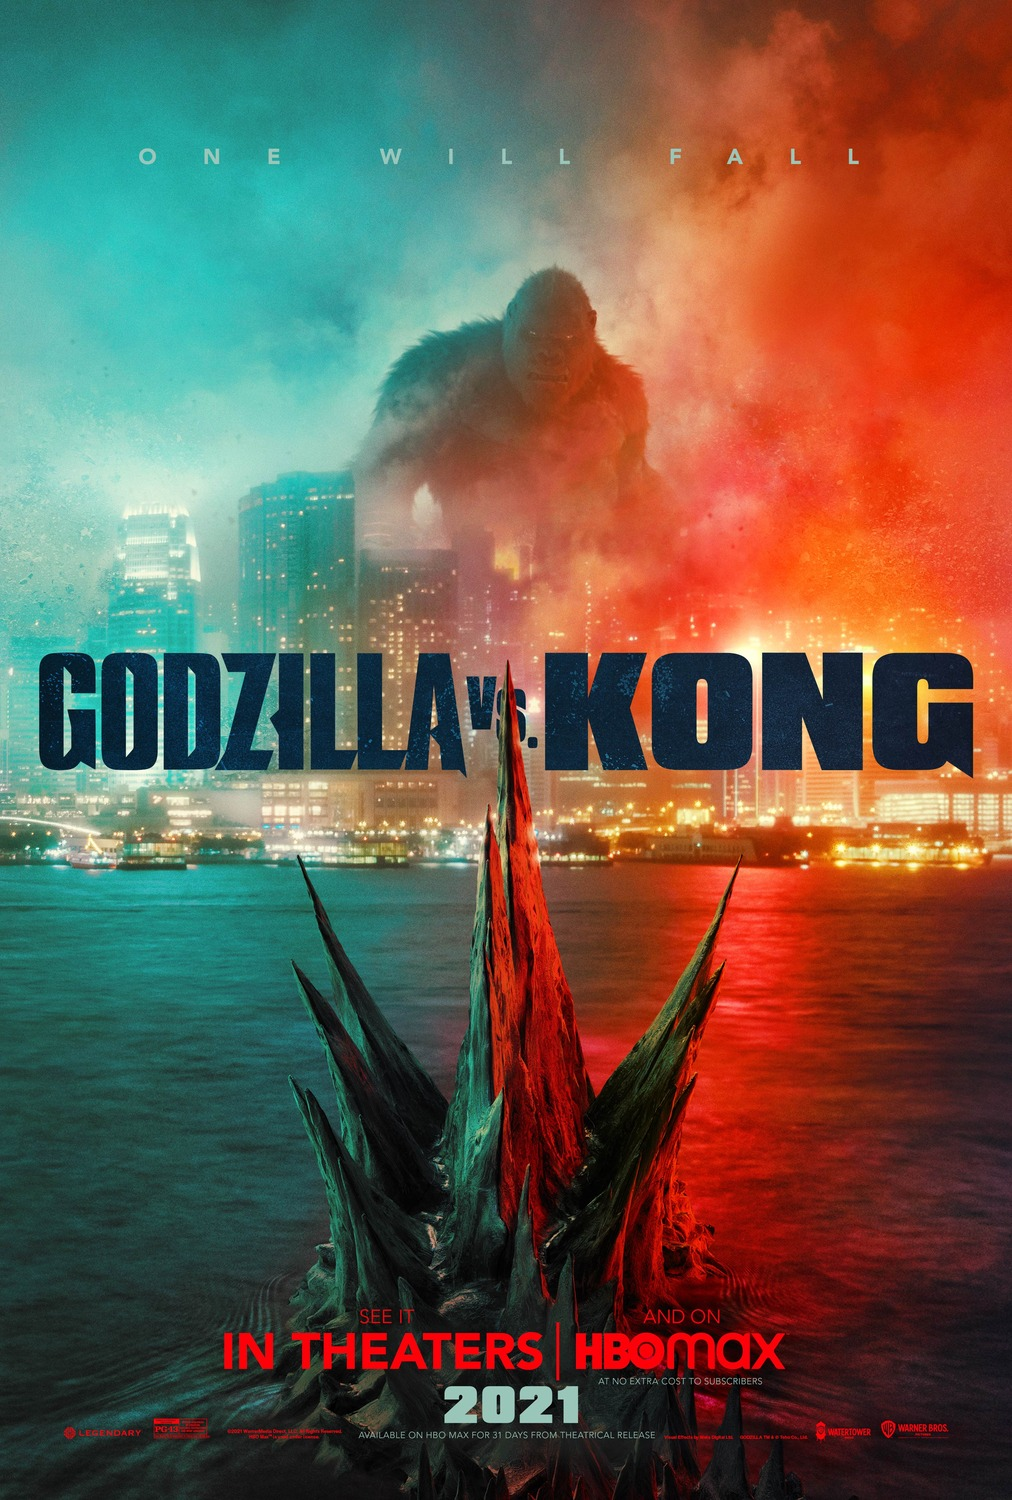 Kevin and Kevin tell you what to watch: Godzilla vs Kong and IT 4/7/21 And you're welcome